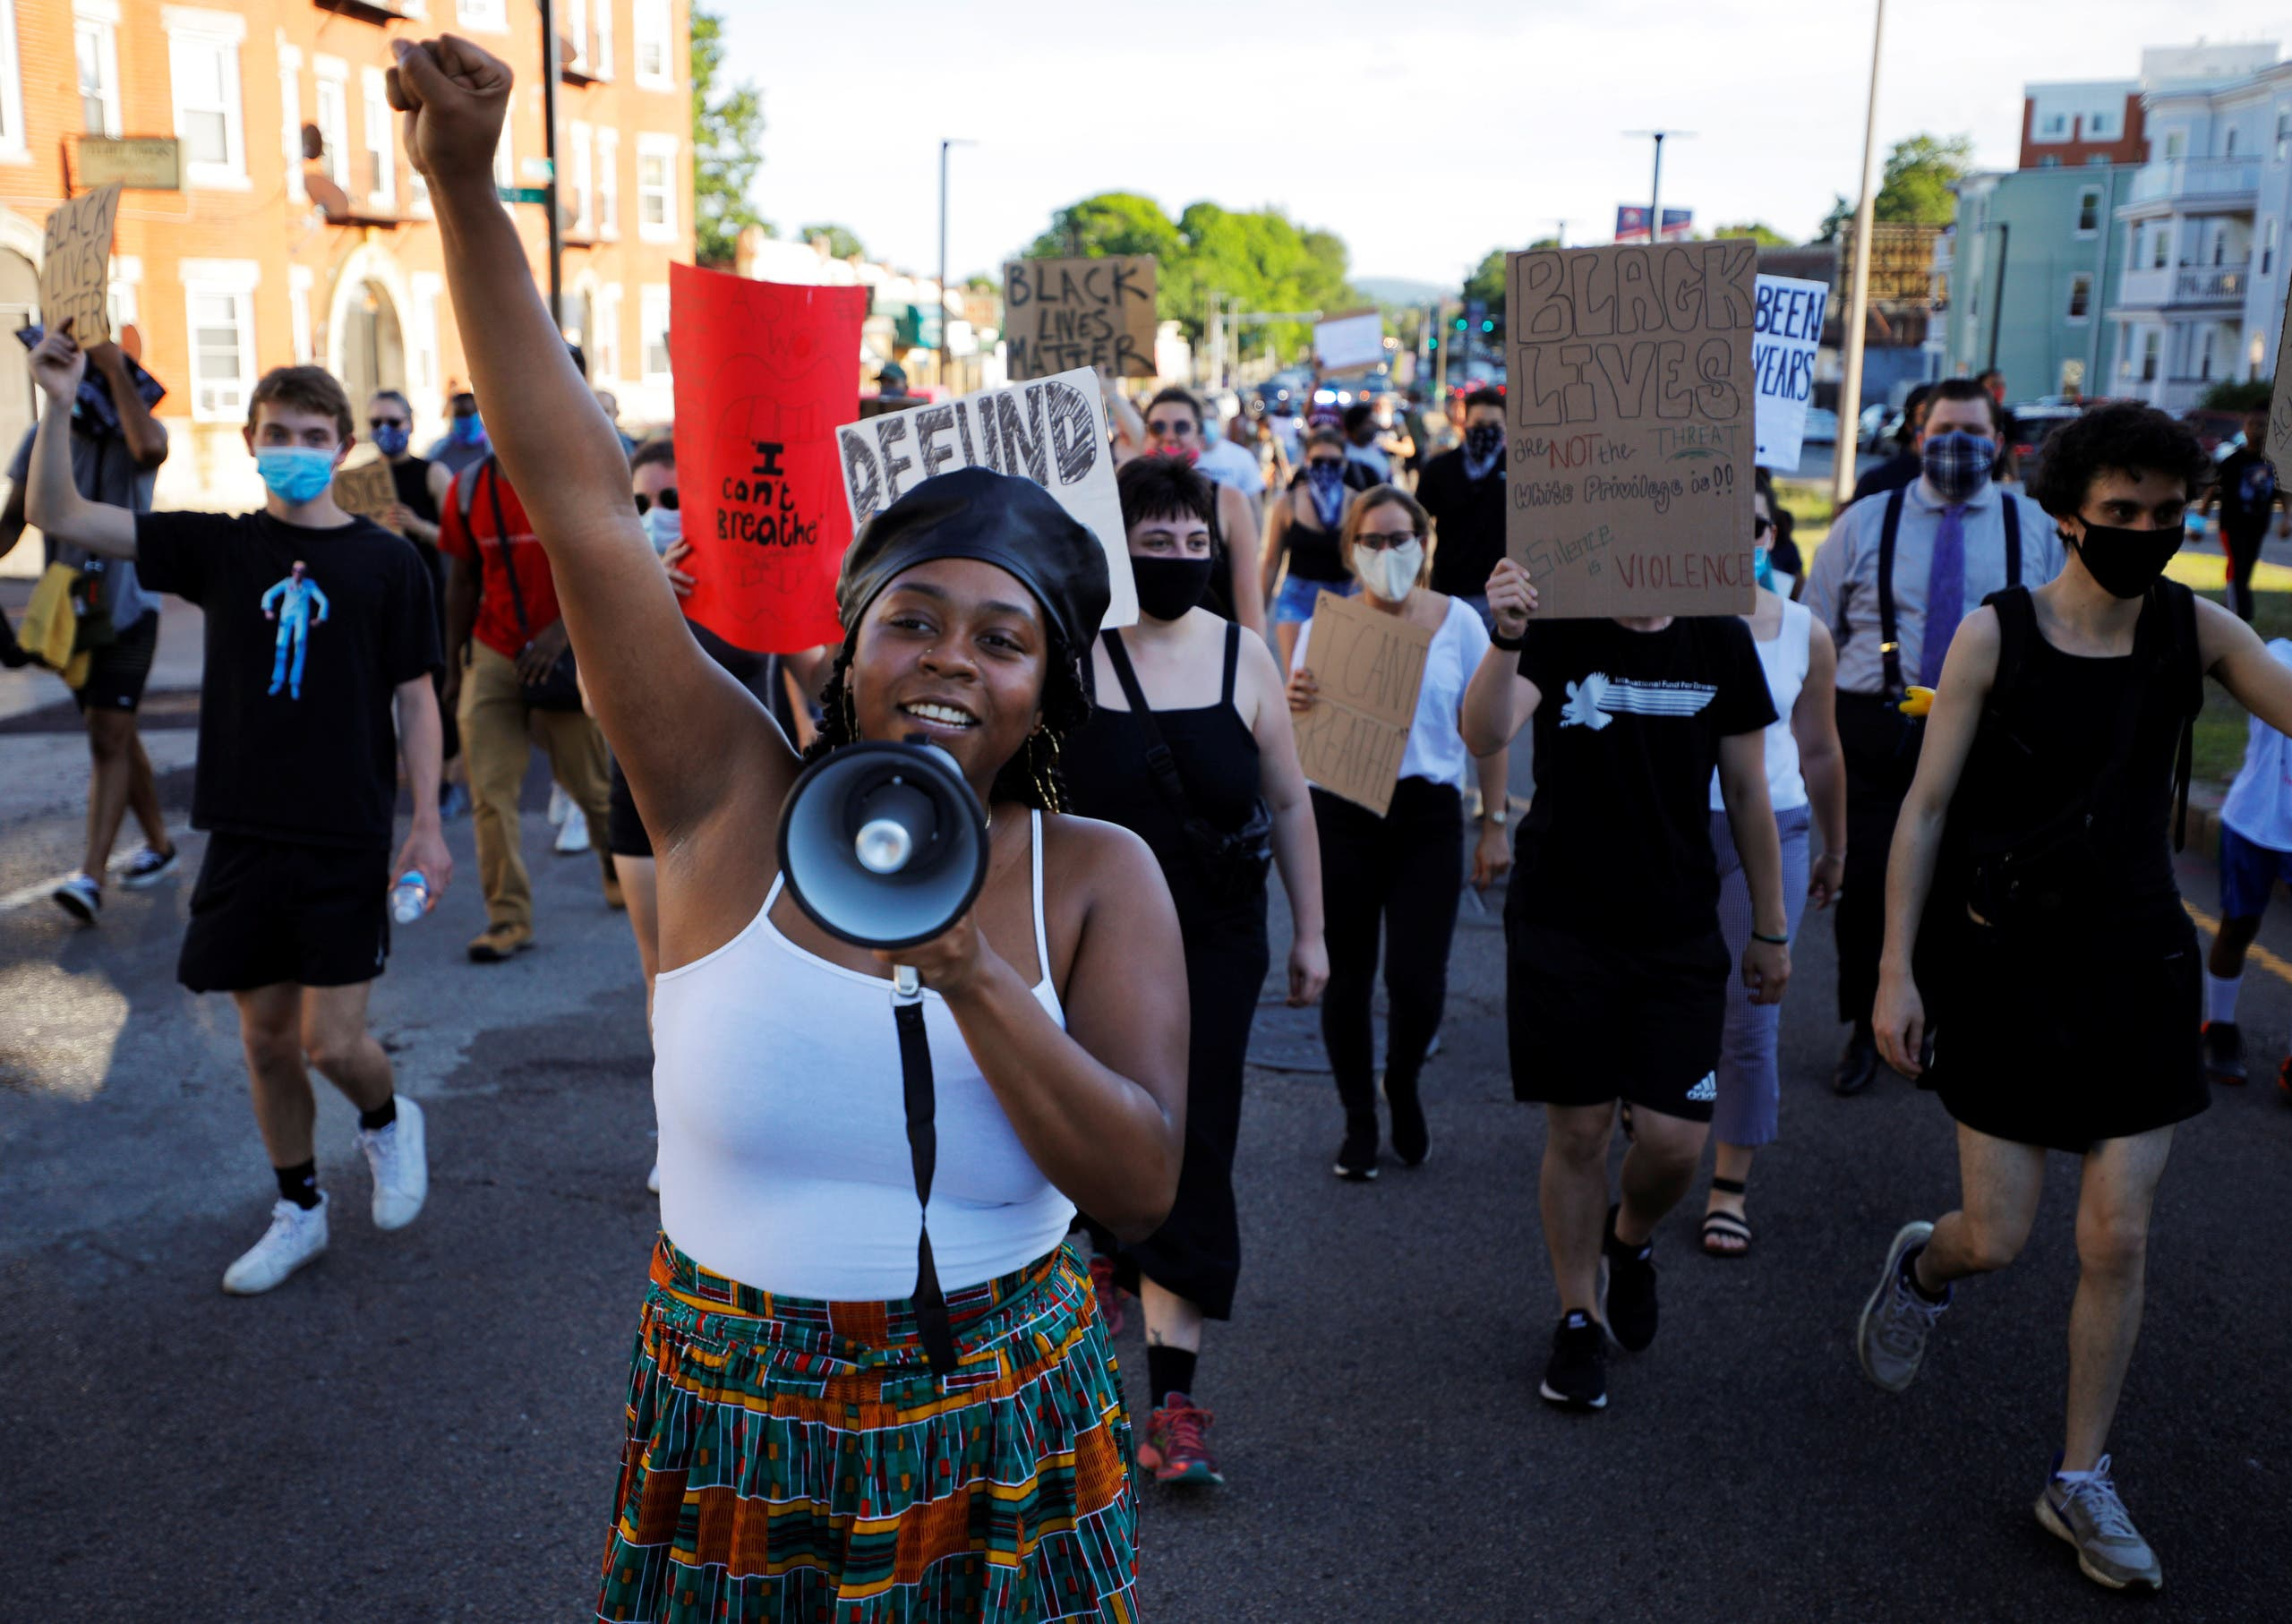 Shannon Greaves helps lead a Juneteenth Awareness Walk to demonstrate against racial inequality in the aftermath of the death in Minneapolis police custody of George Floyd, in Boston, Massachusetts, U.S., June 18, 2020. (Reuters)